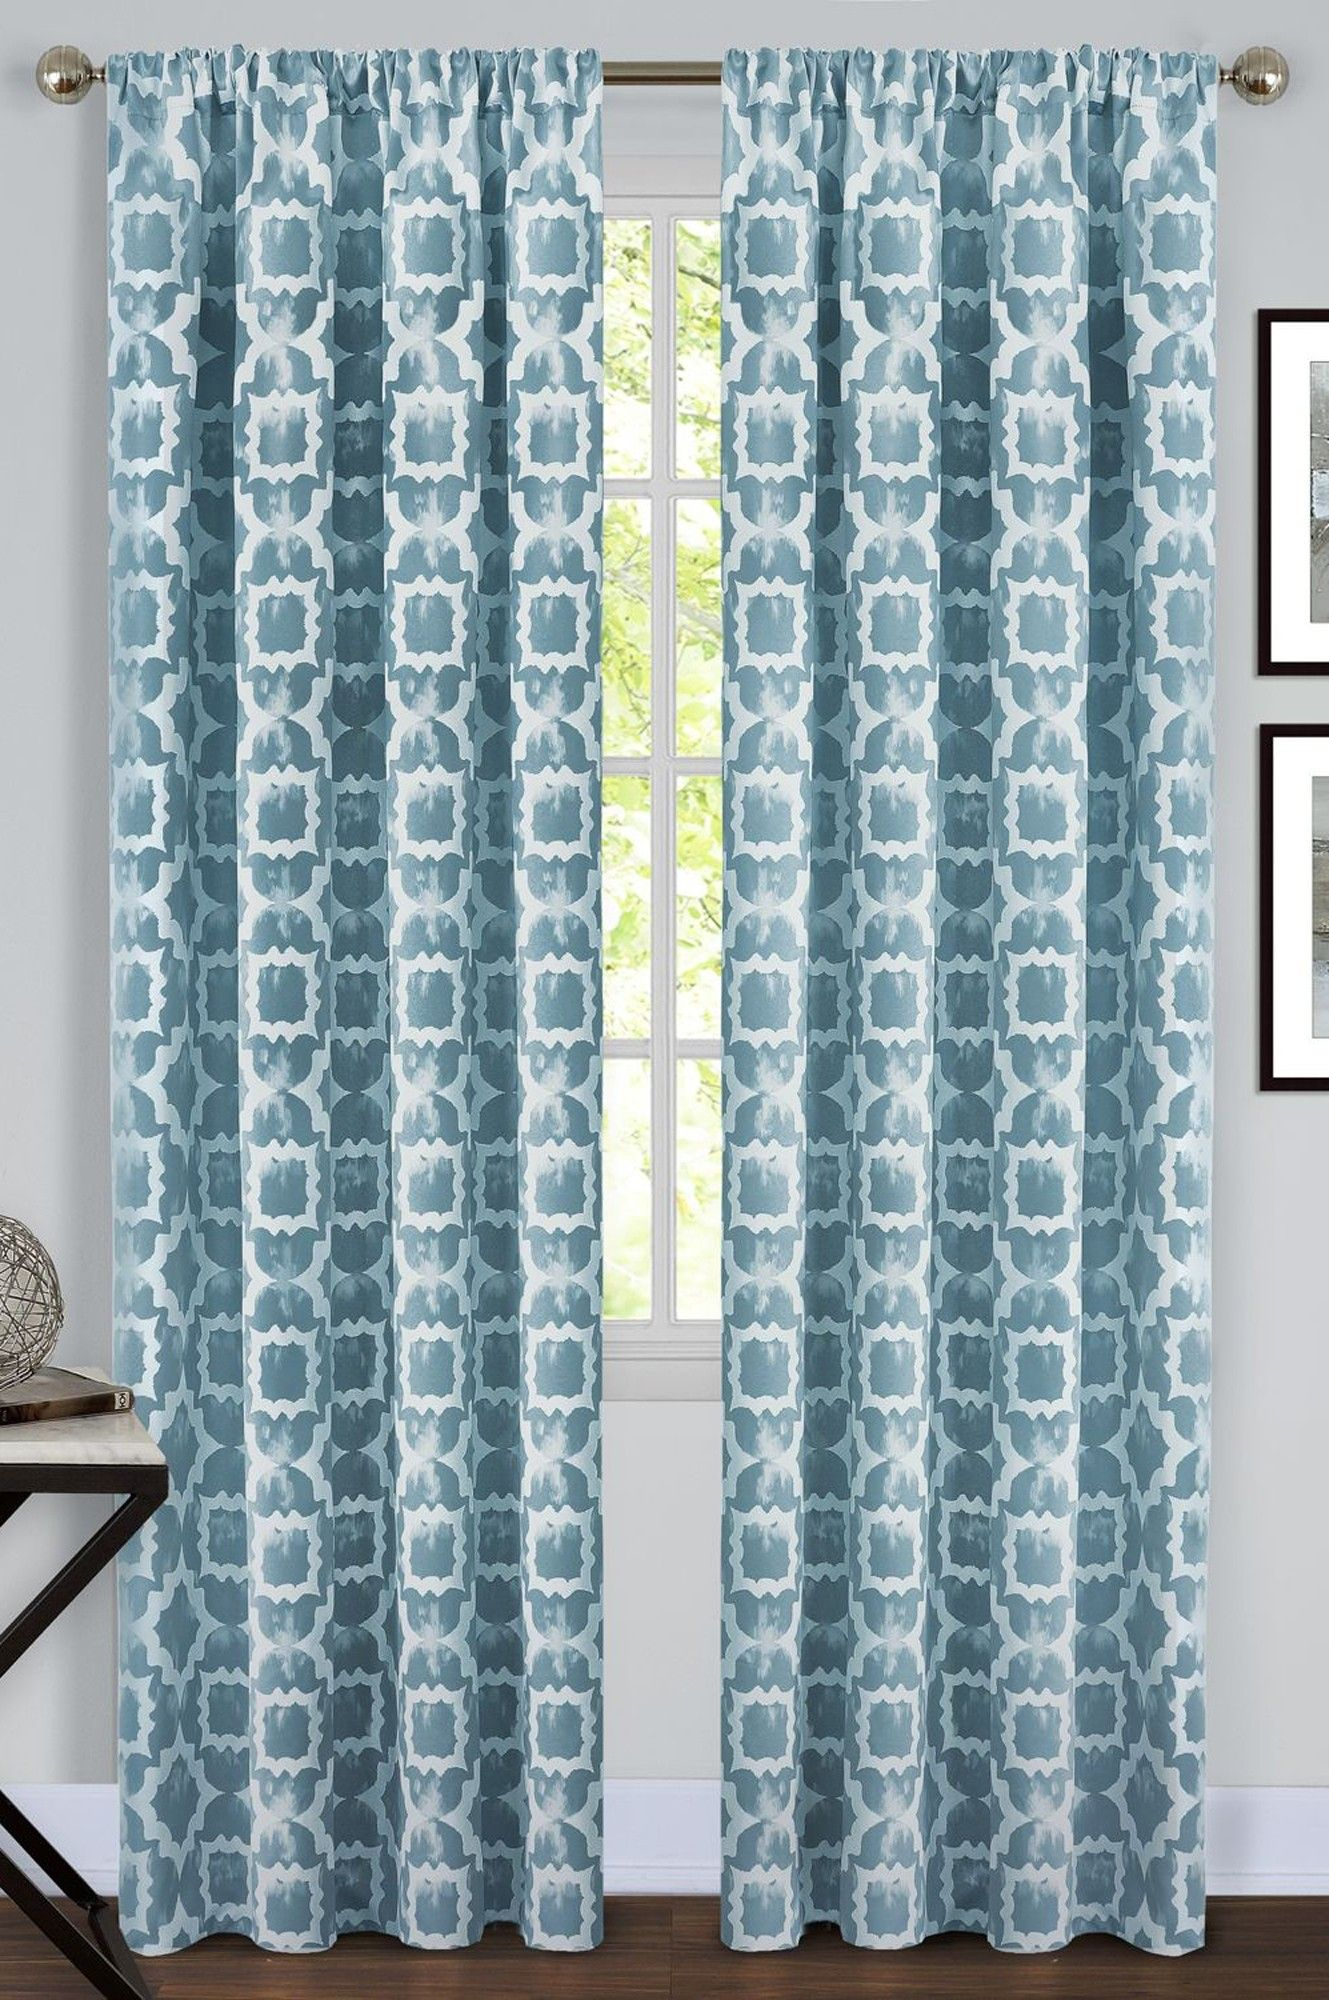 Tara Room Darkening Rod Pocket Curtain Panel